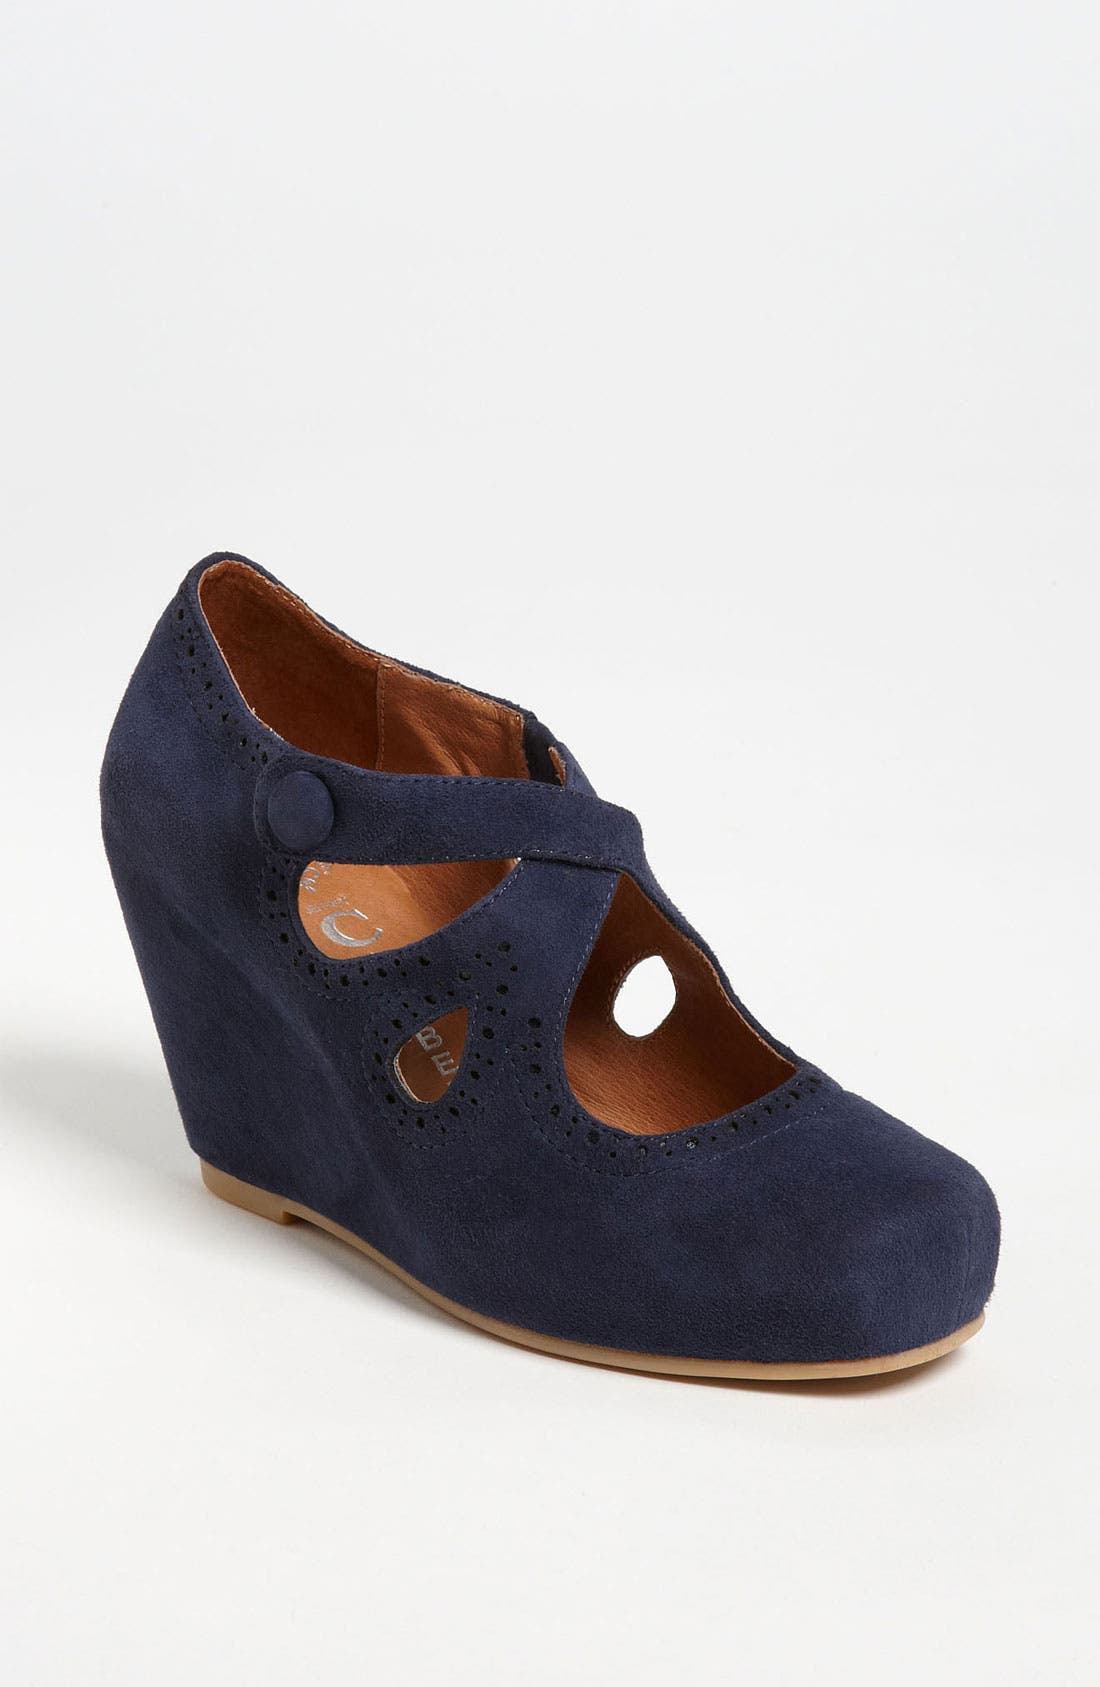 Main Image - Jeffrey Campbell 'Leigh' Wedge